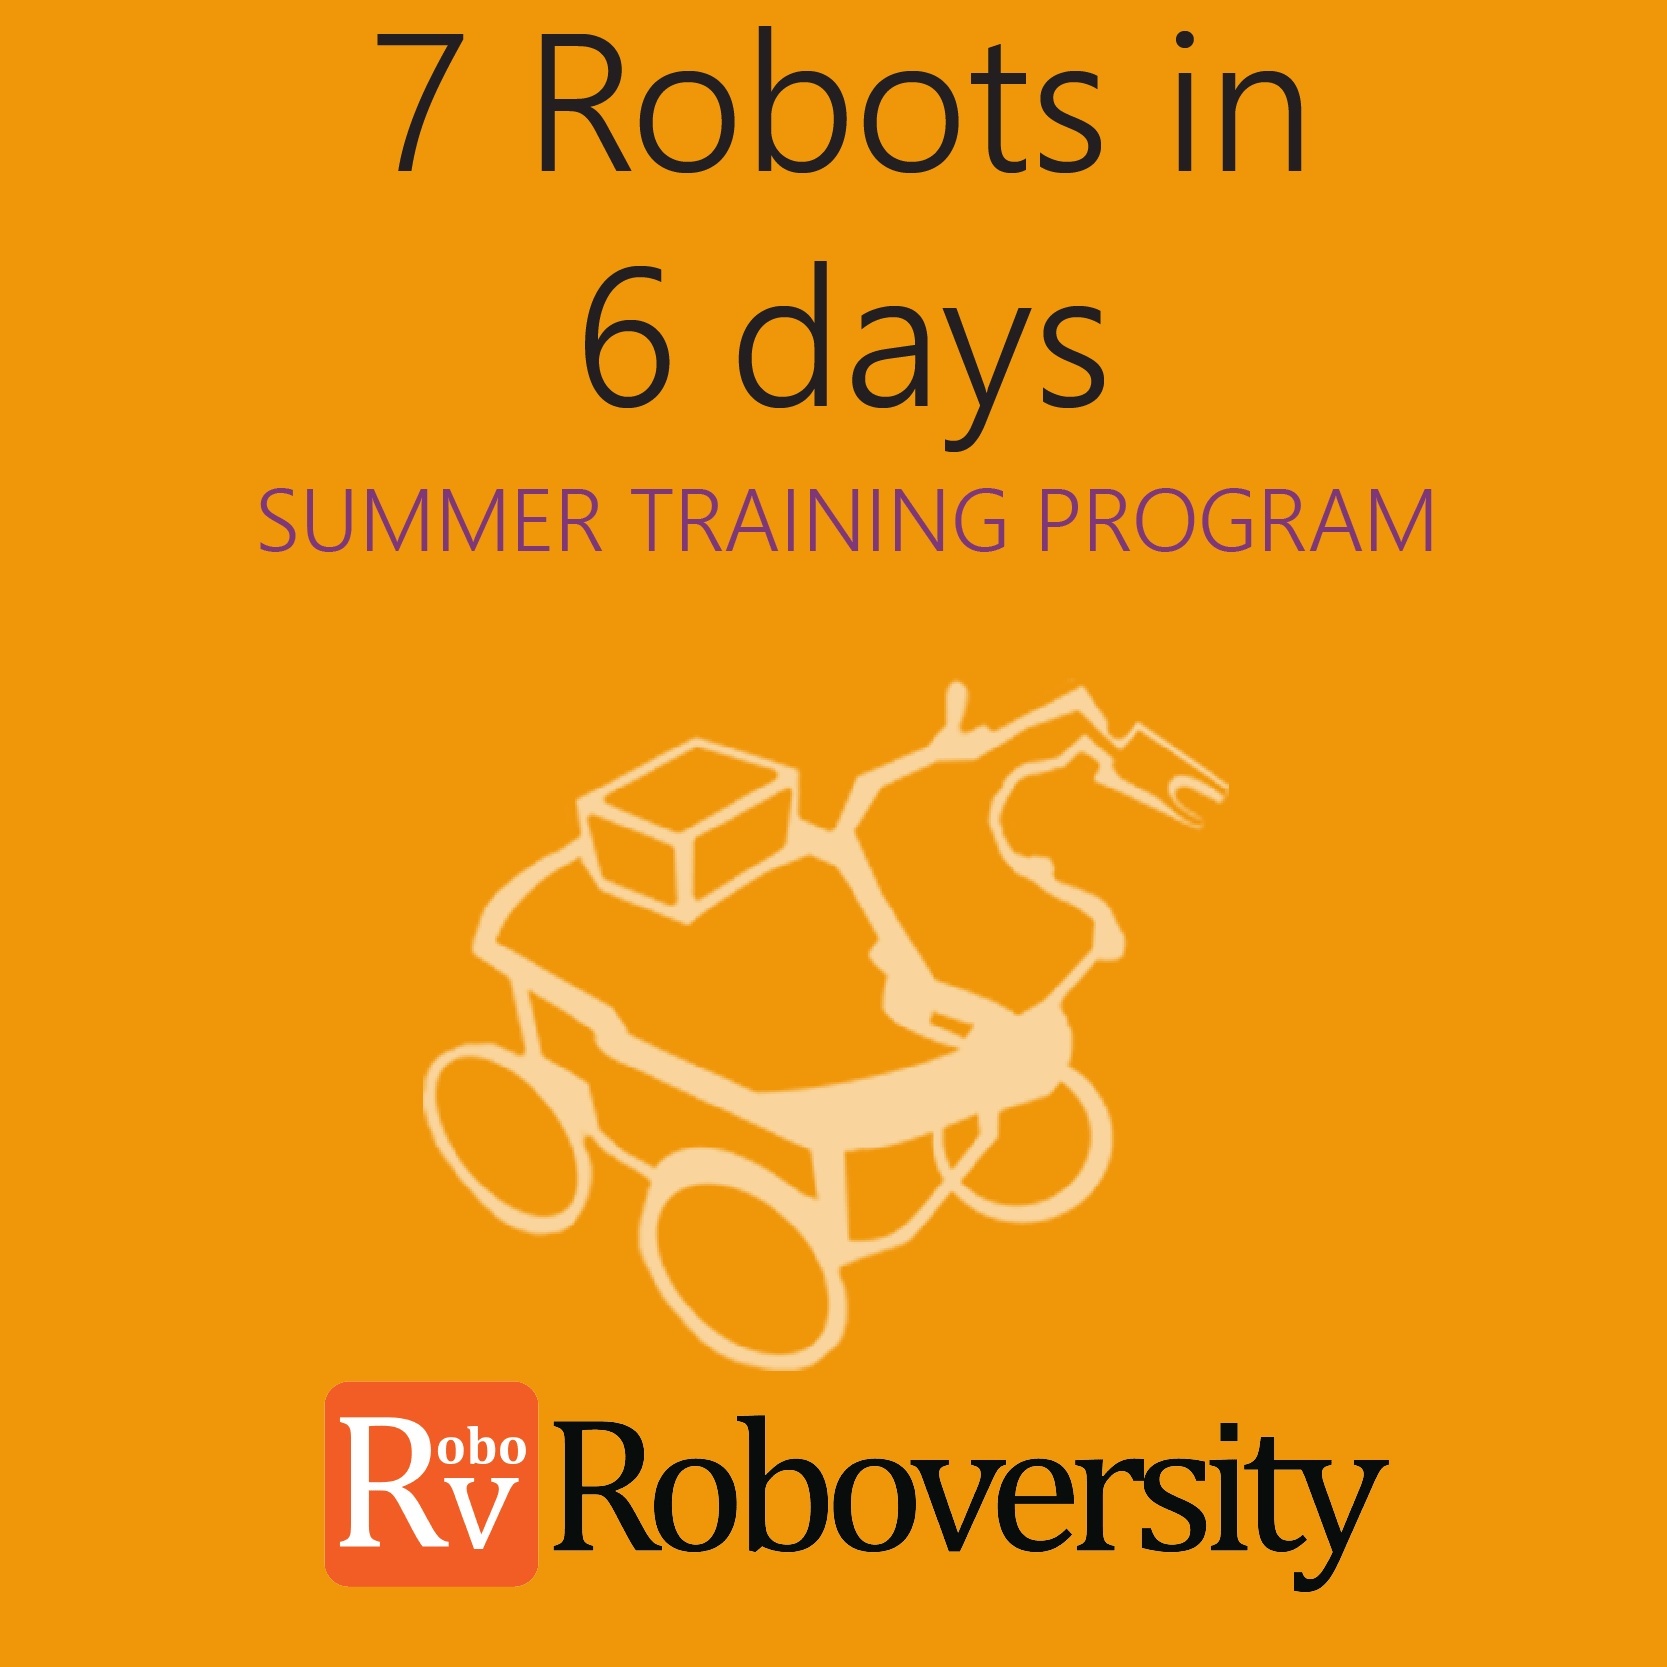 Summer Training Program on 7 Robots in 6 Days  at Skyfi Labs Center, Mandeep Education Academy, New Rajinder Nagar Workshop